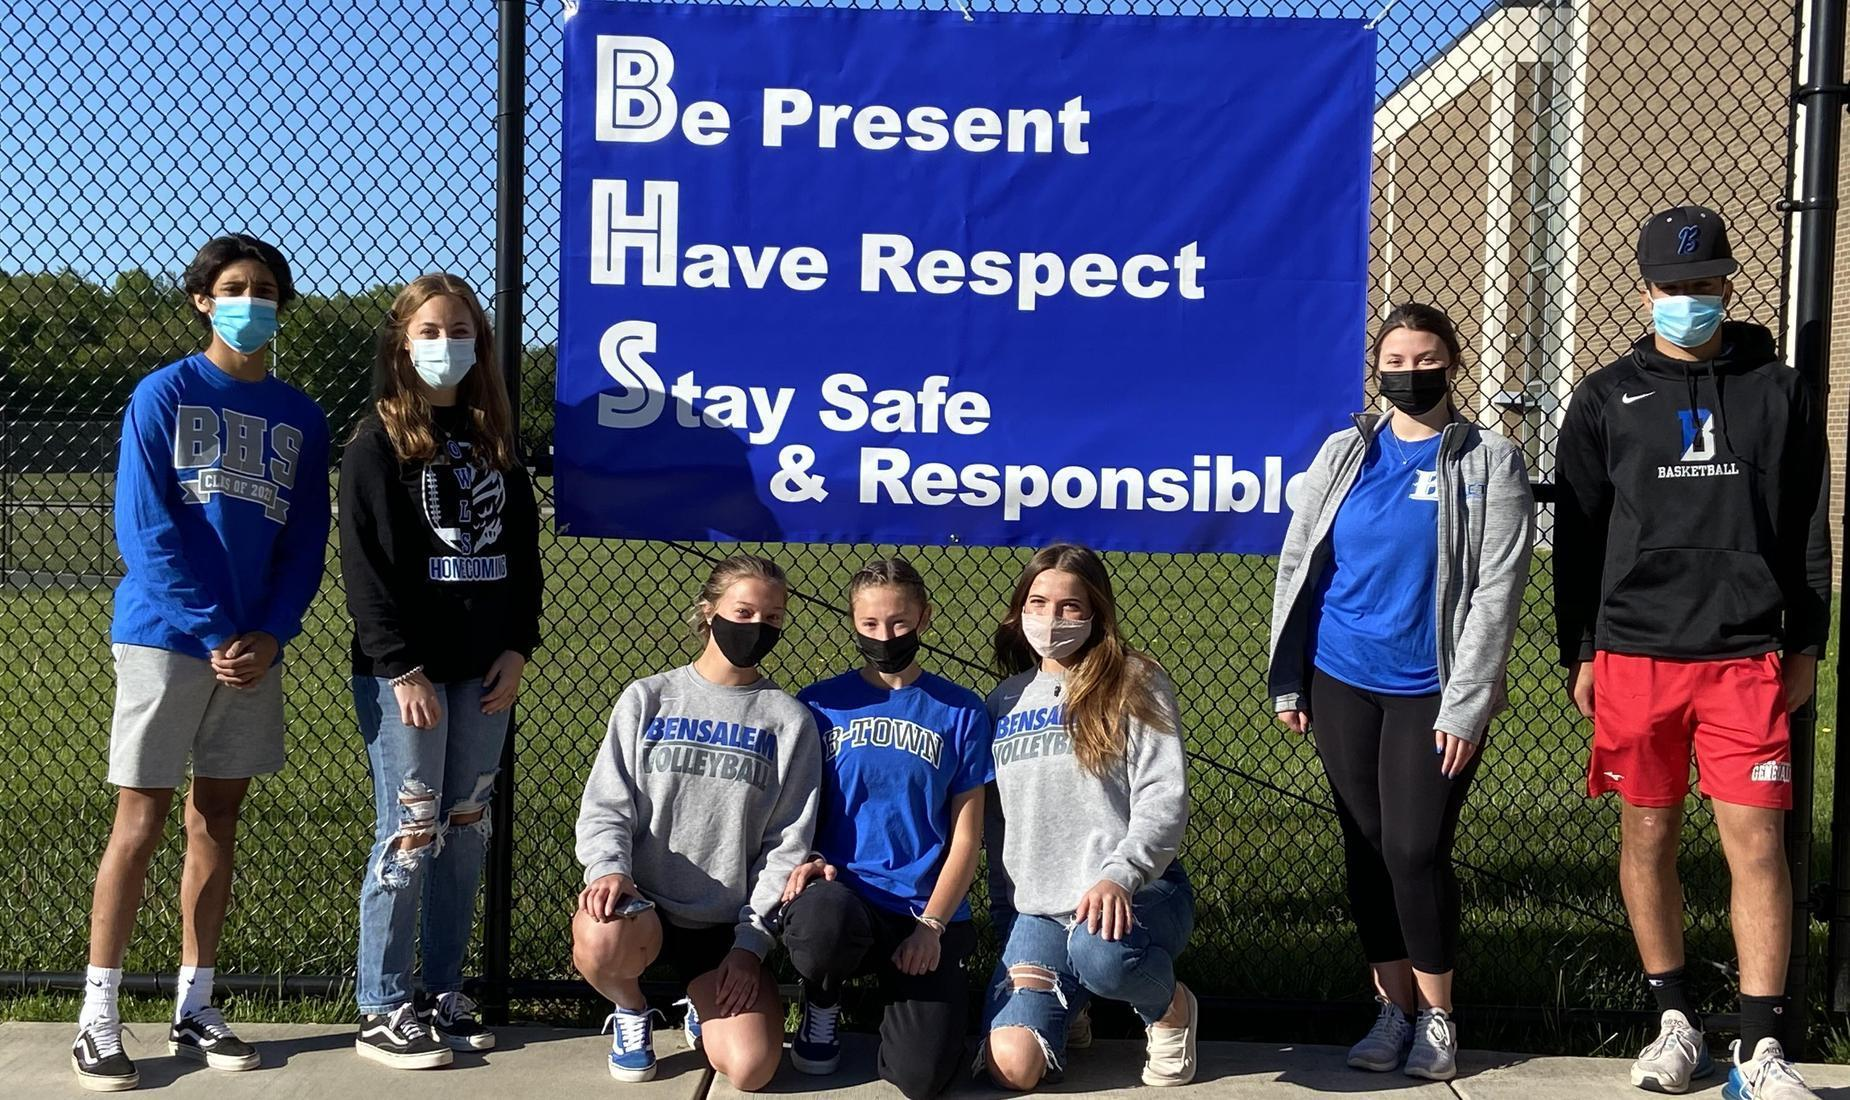 8 girls and boys wearing Bensalem gear in blue, gray, and black standing next to a sign that says BHS: Be Present, Have Respect, Stay Safe and Responsible